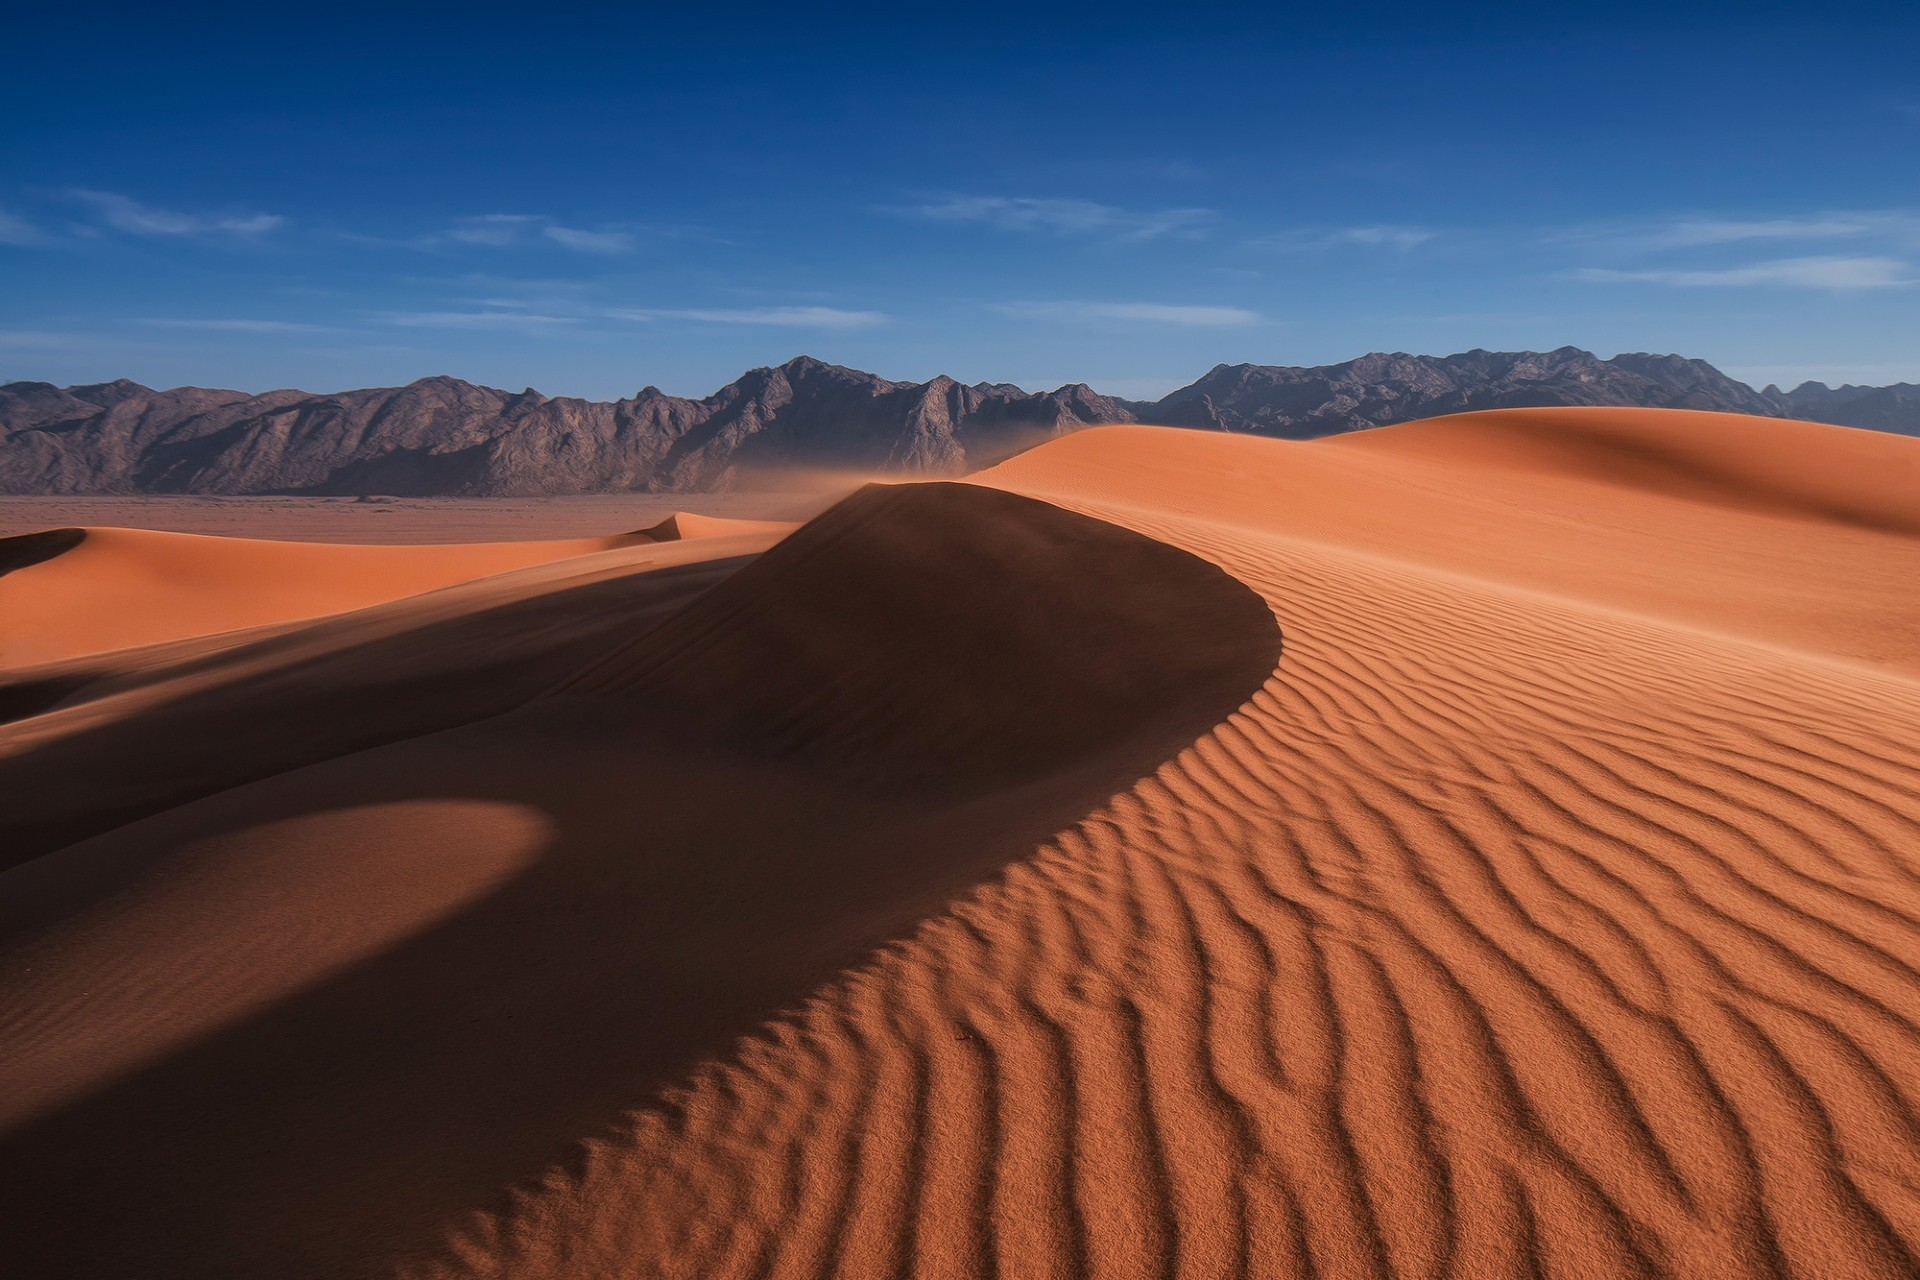 desert sand dune arid dry barren landscape travel hill adventure hot dawn sunset drought alone remote